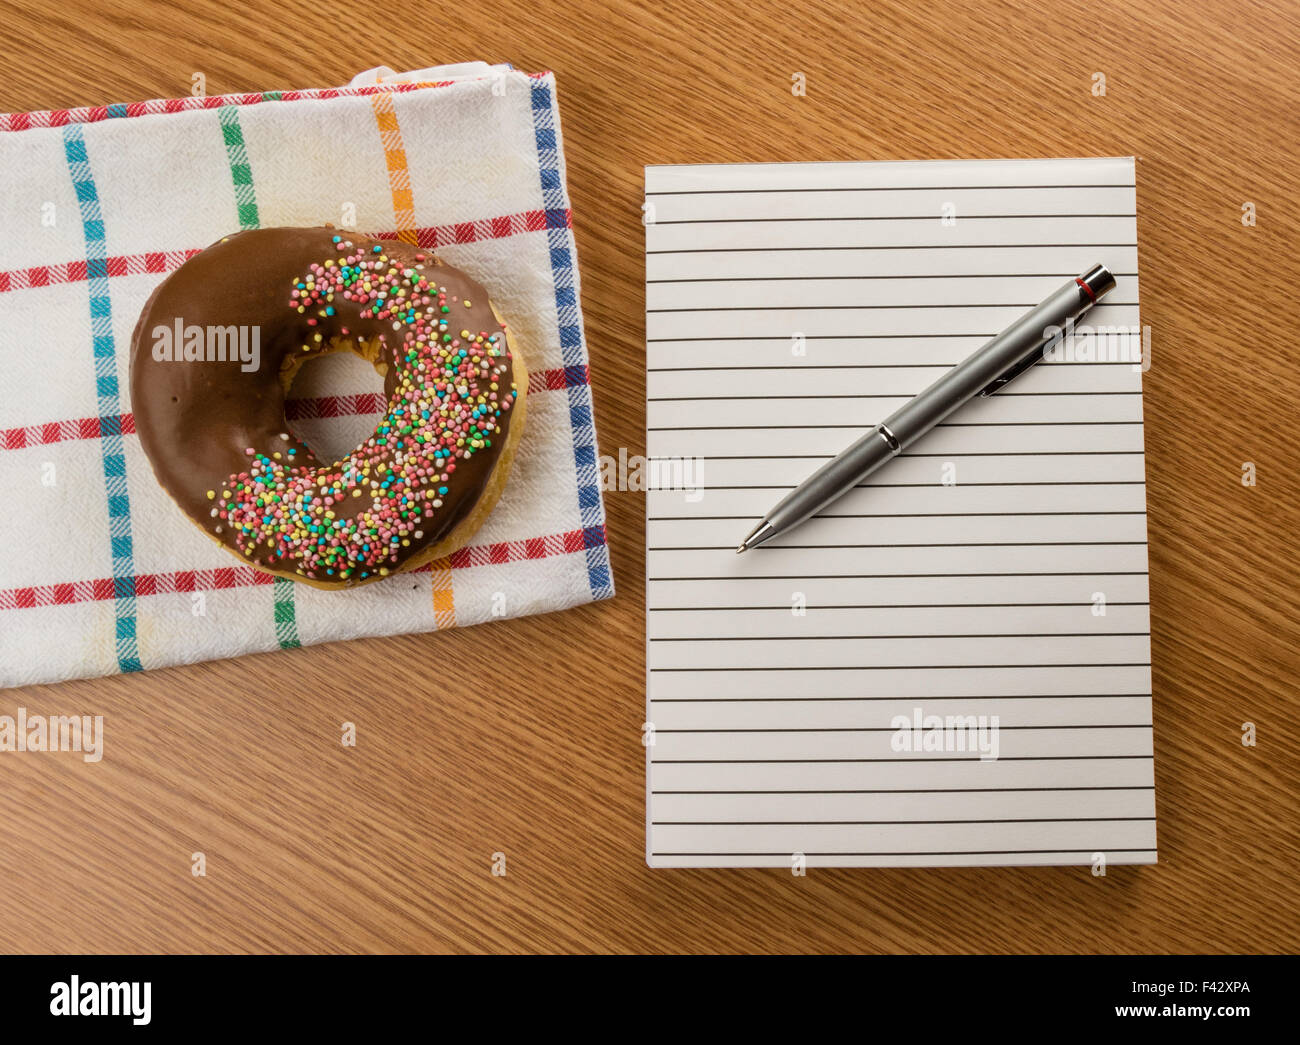 doughnut and notepad with pen - Stock Image